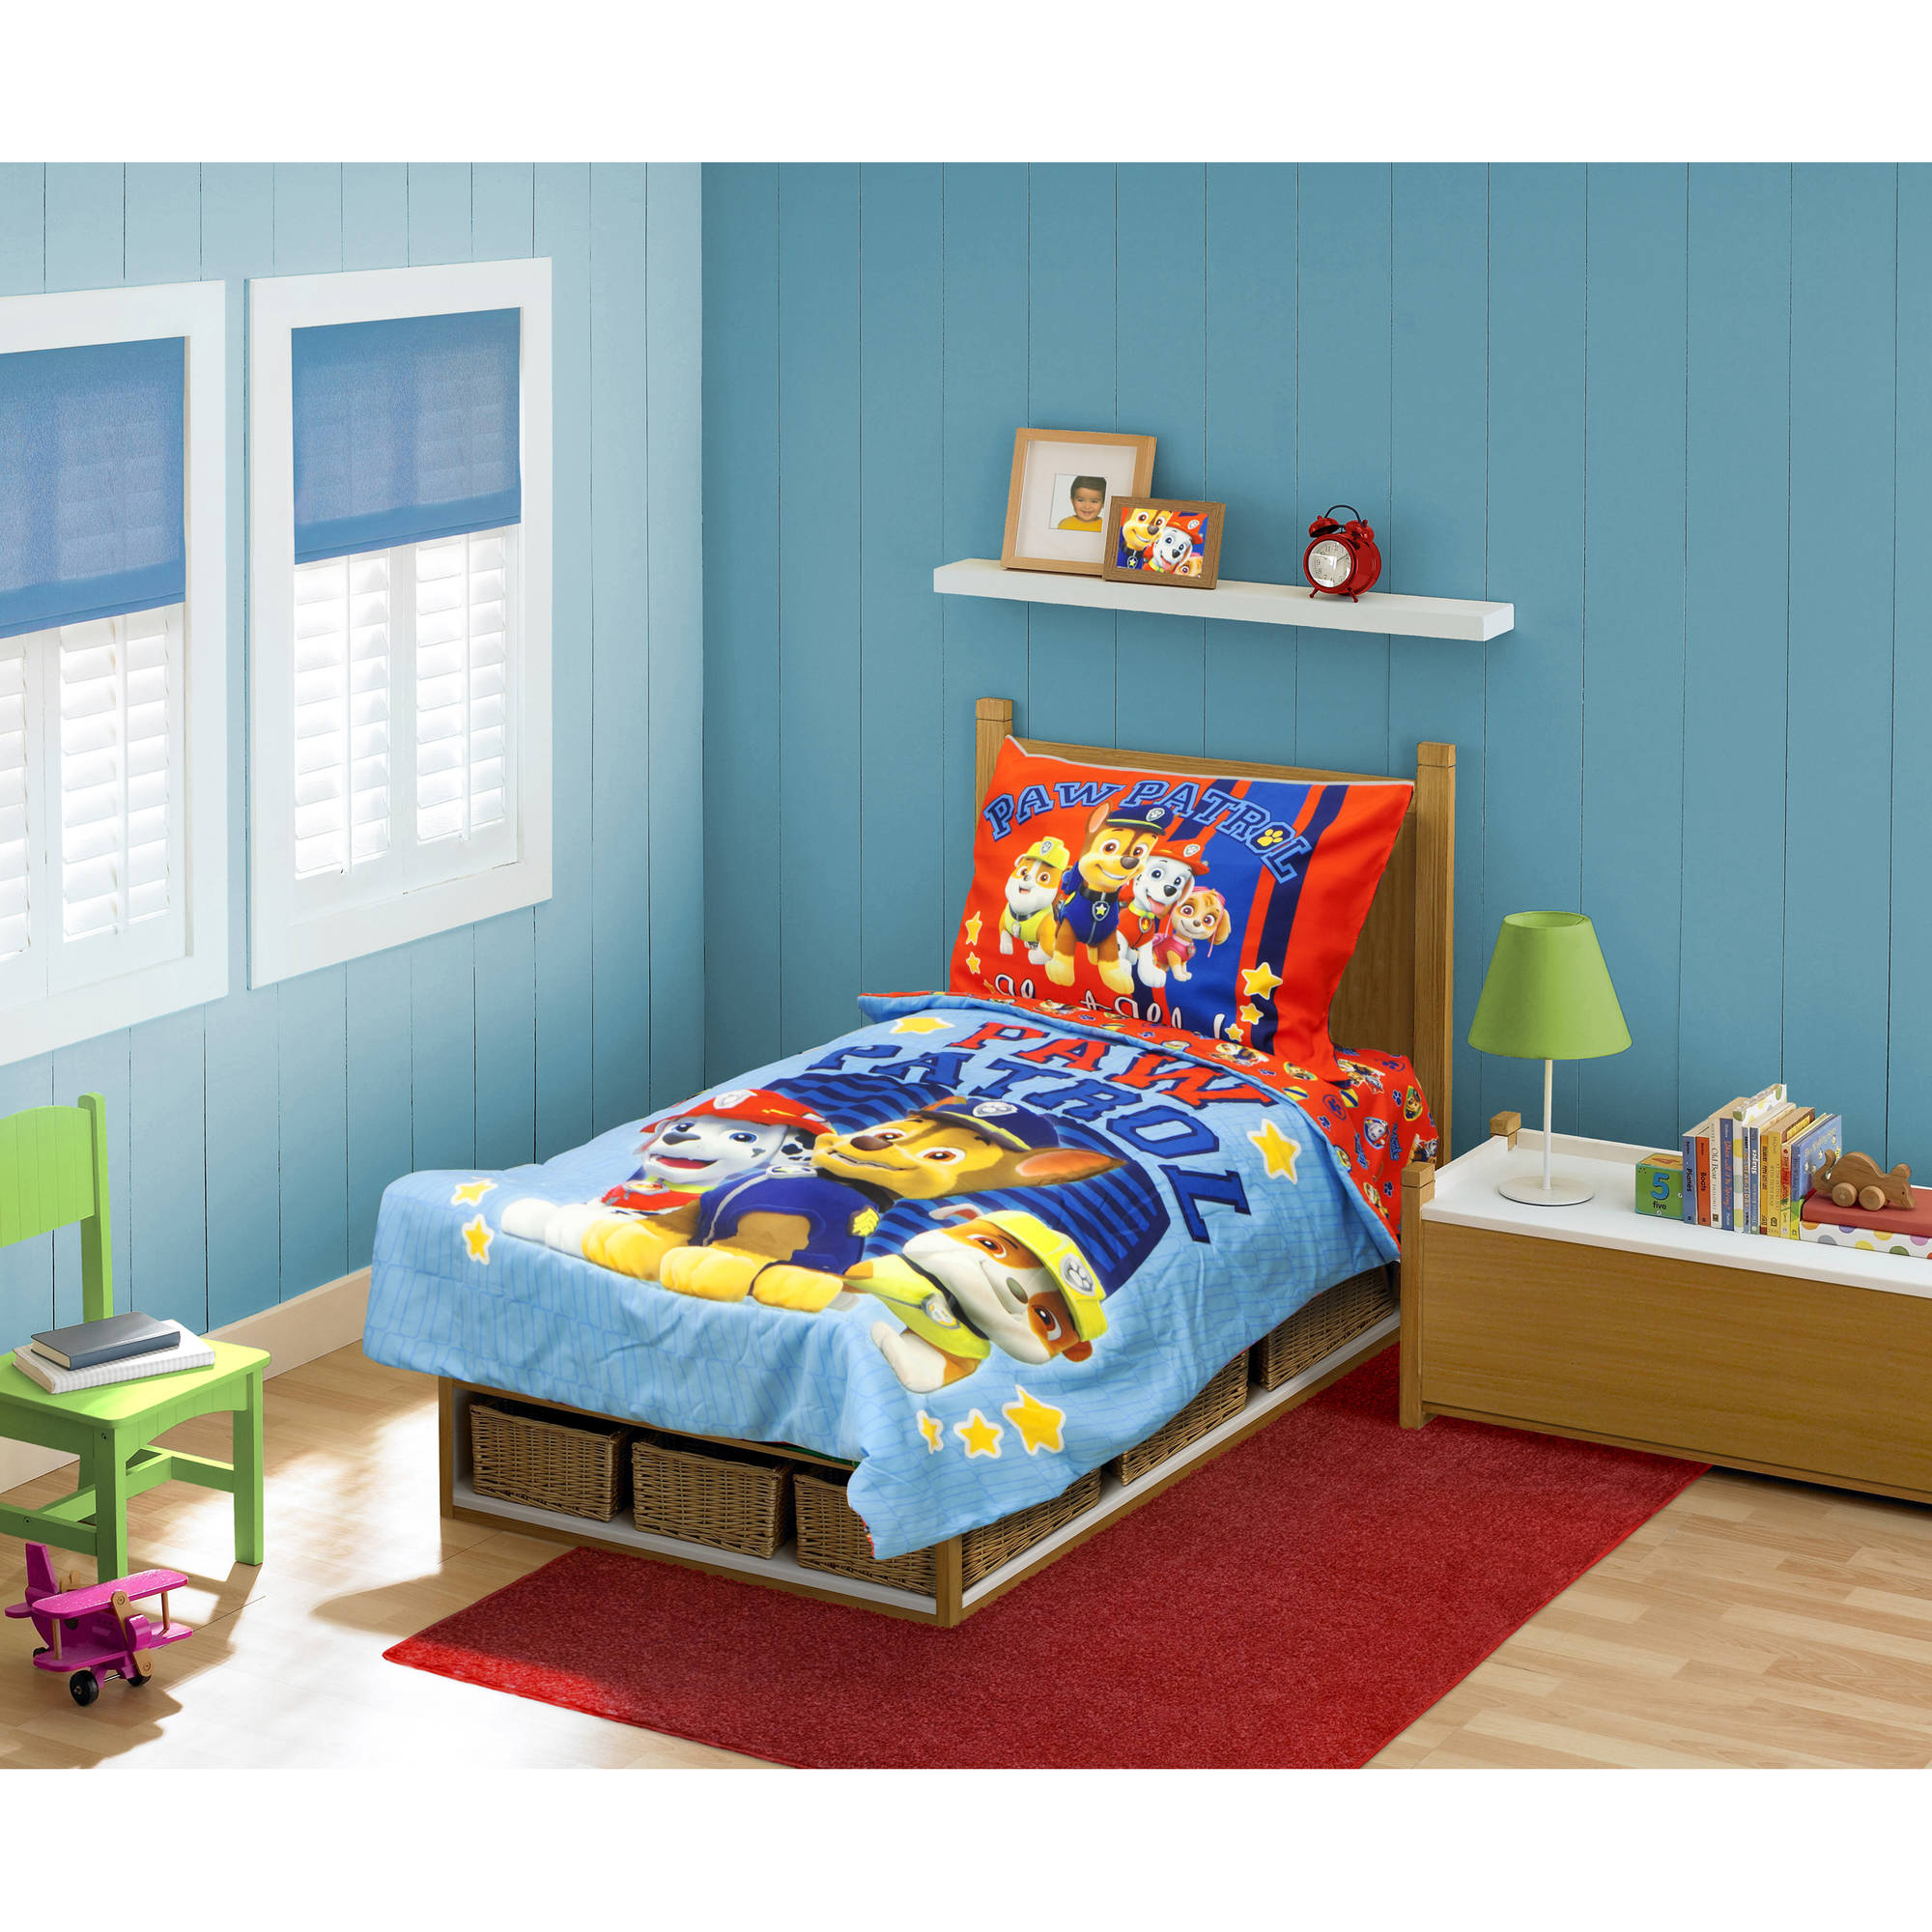 Babyboom Nick Jr Paw Patrol 4 Piece Toddler Bedding Set